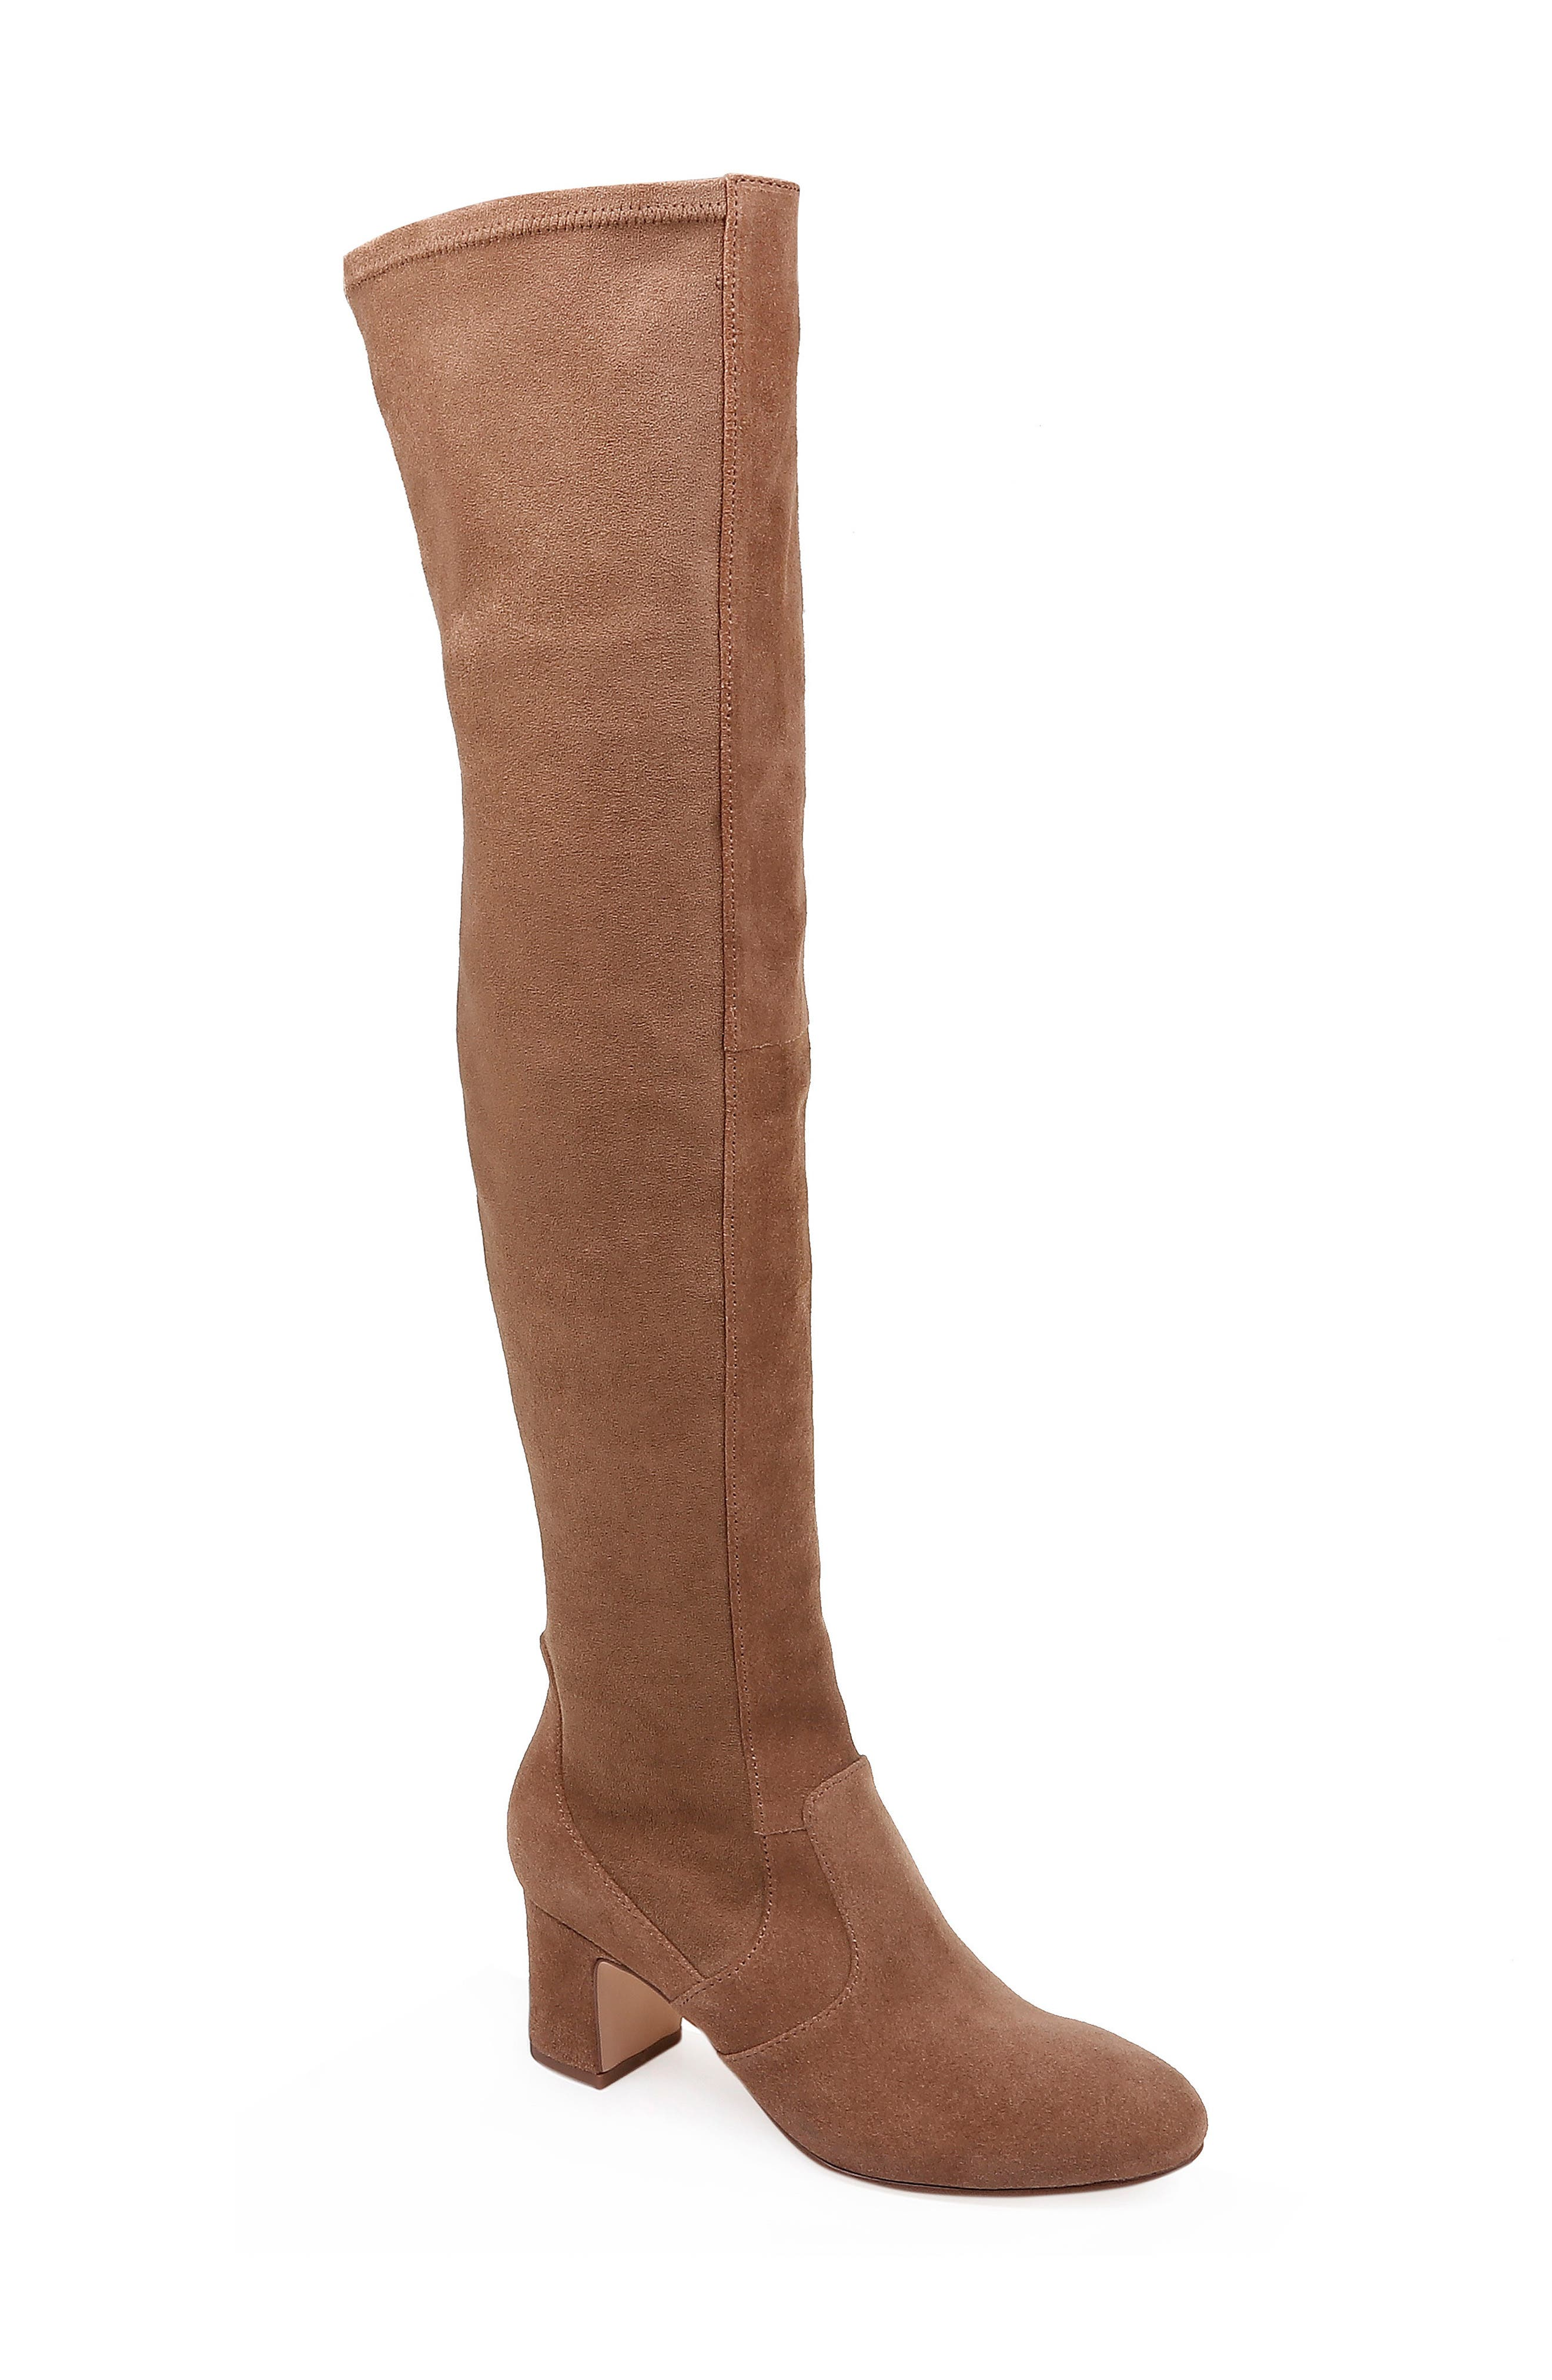 Over the Knee Stretch Back Boot,                         Main,                         color, LIGHT BROWN SUEDE